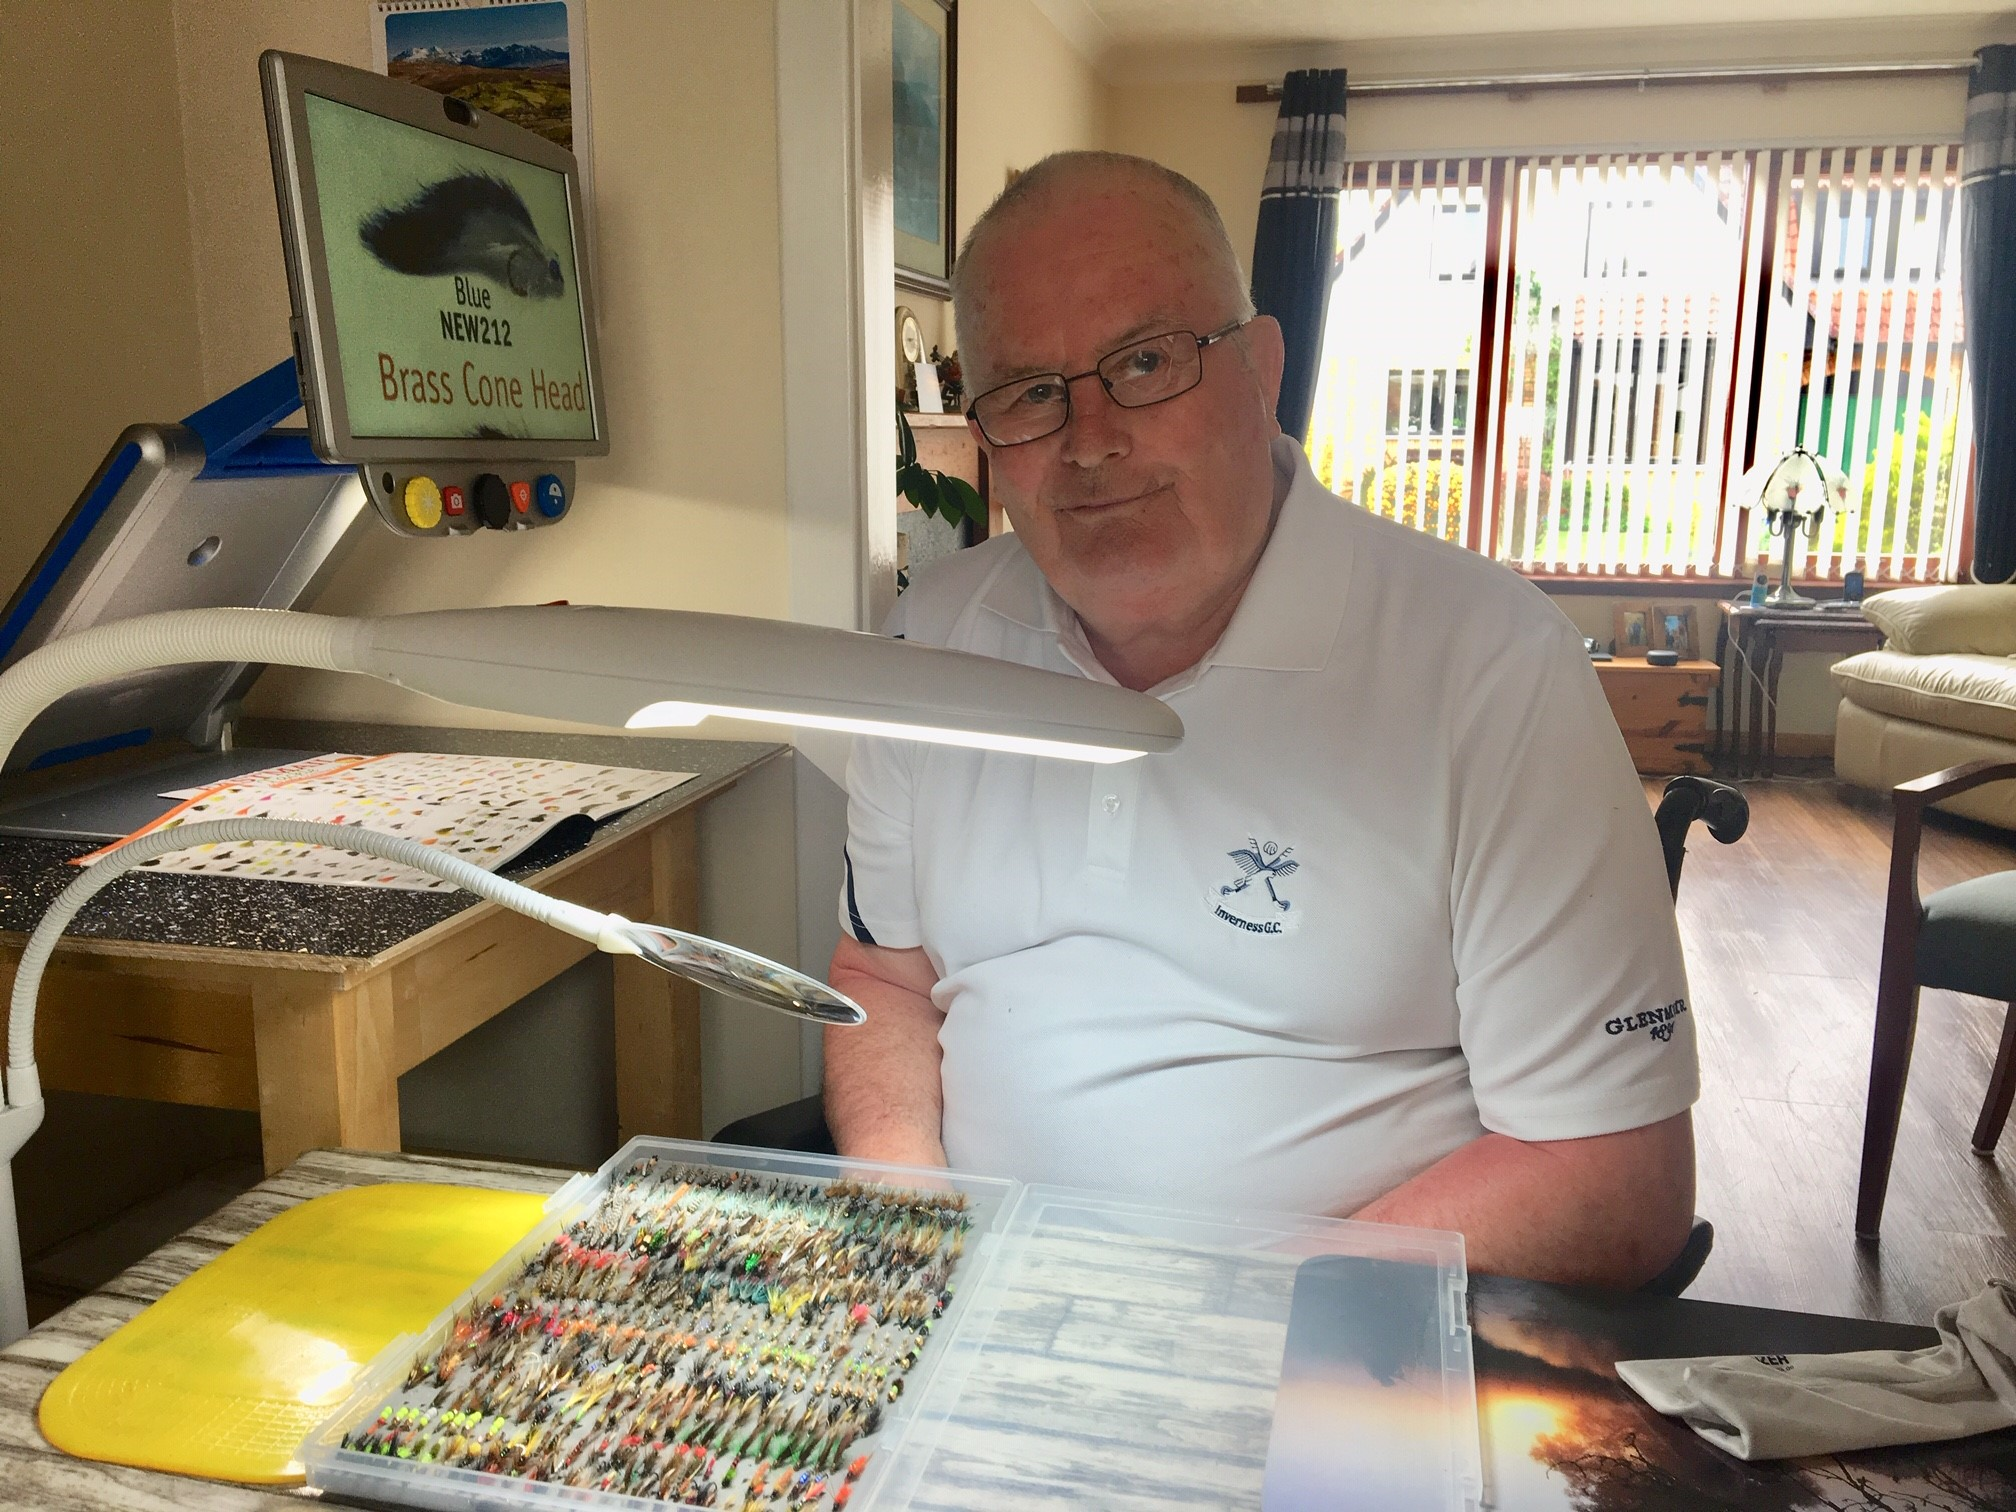 Del Tulloch, 75, of Inverness, with some of his flies; Del pictured with his CCTV and specialist lighting from Scottish War Blinded that he is using to practise tying flies again and read his fishing magazines.